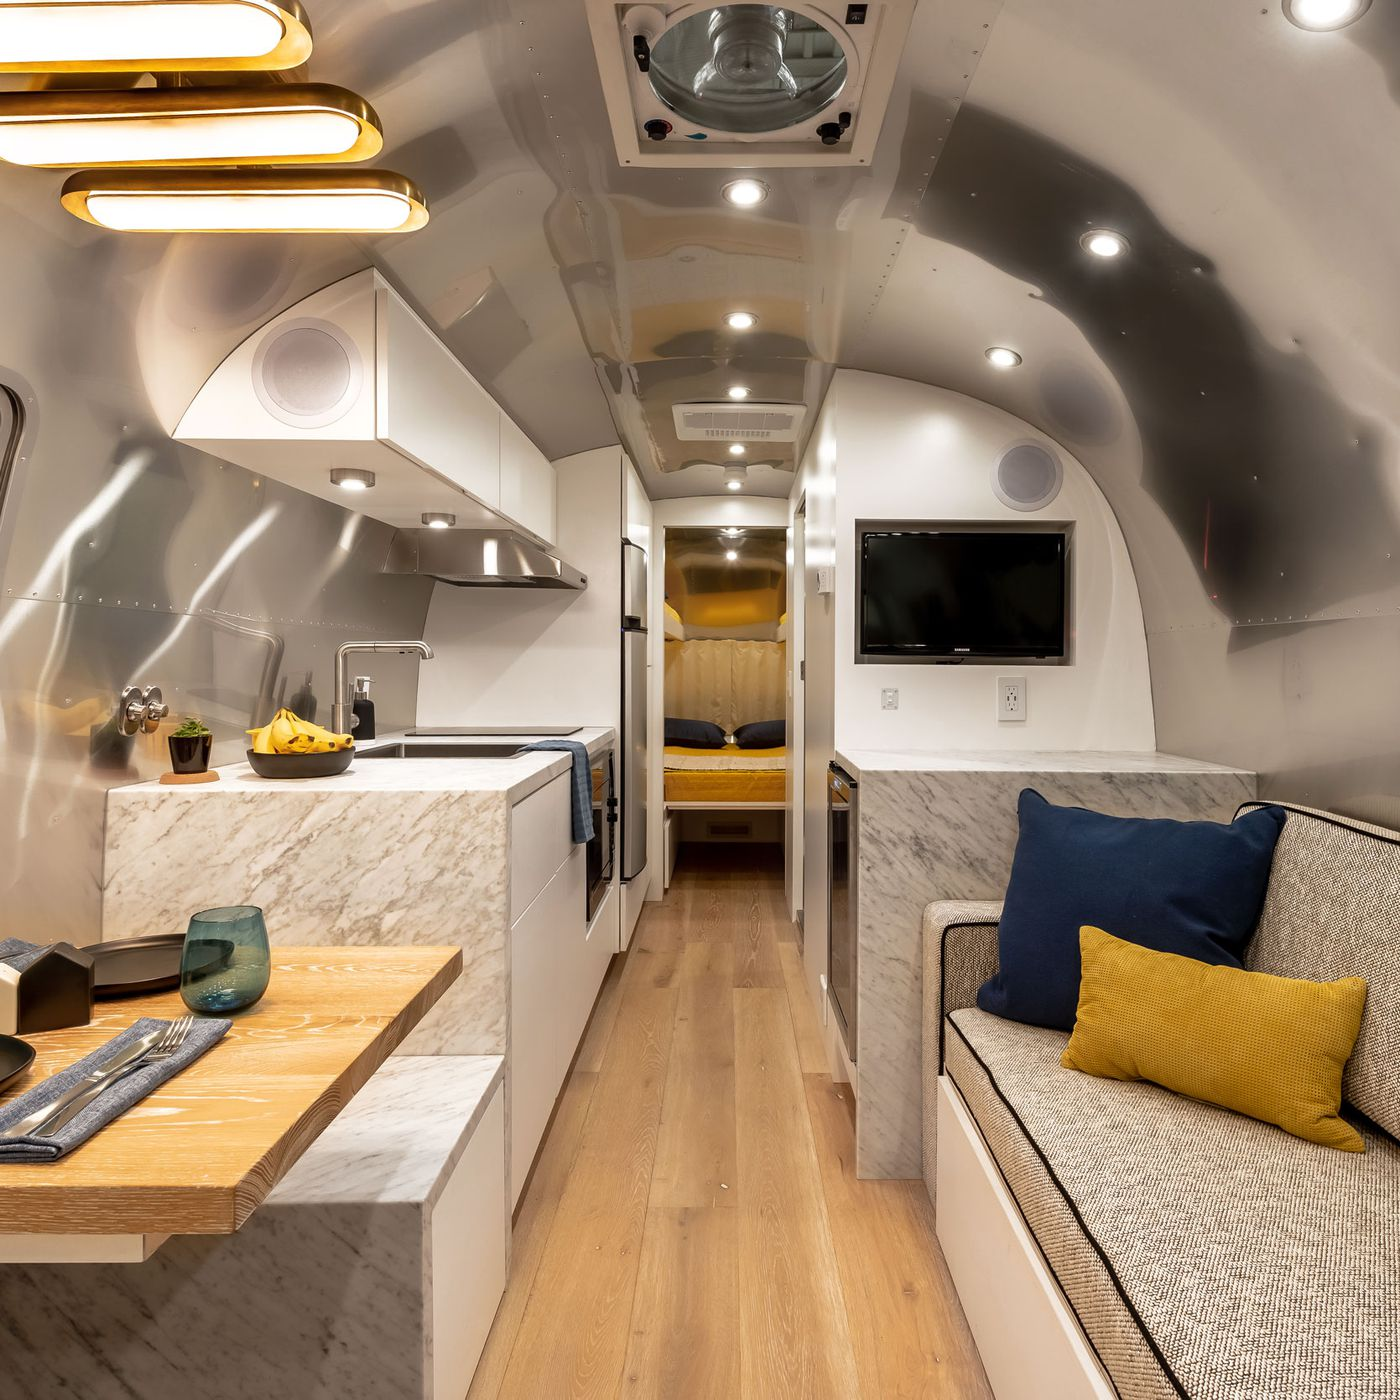 Airstream Caravan Vintage renovated airstream is like a chic apartment on wheels - curbed